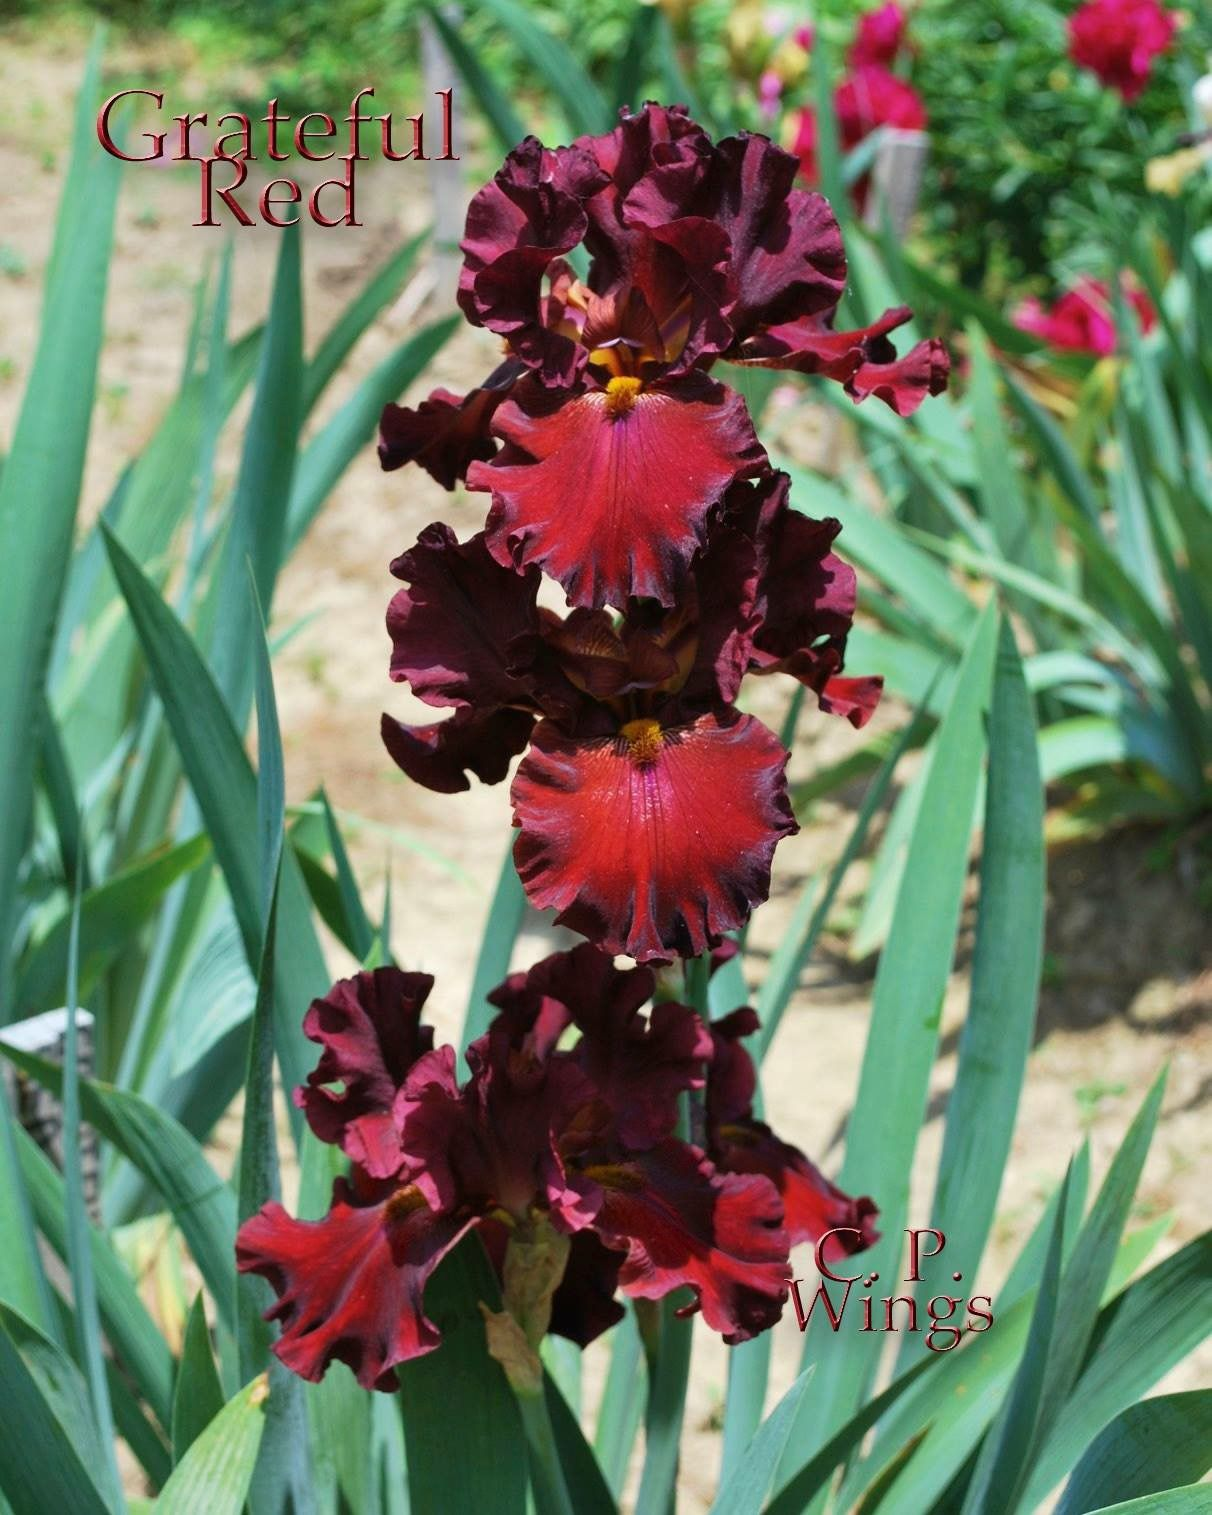 Pin by pam haik on plants i want for my garden pinterest gothic gothic garden rainbow flowers bearded iris ruby red irises grateful flora plants lilies izmirmasajfo Images